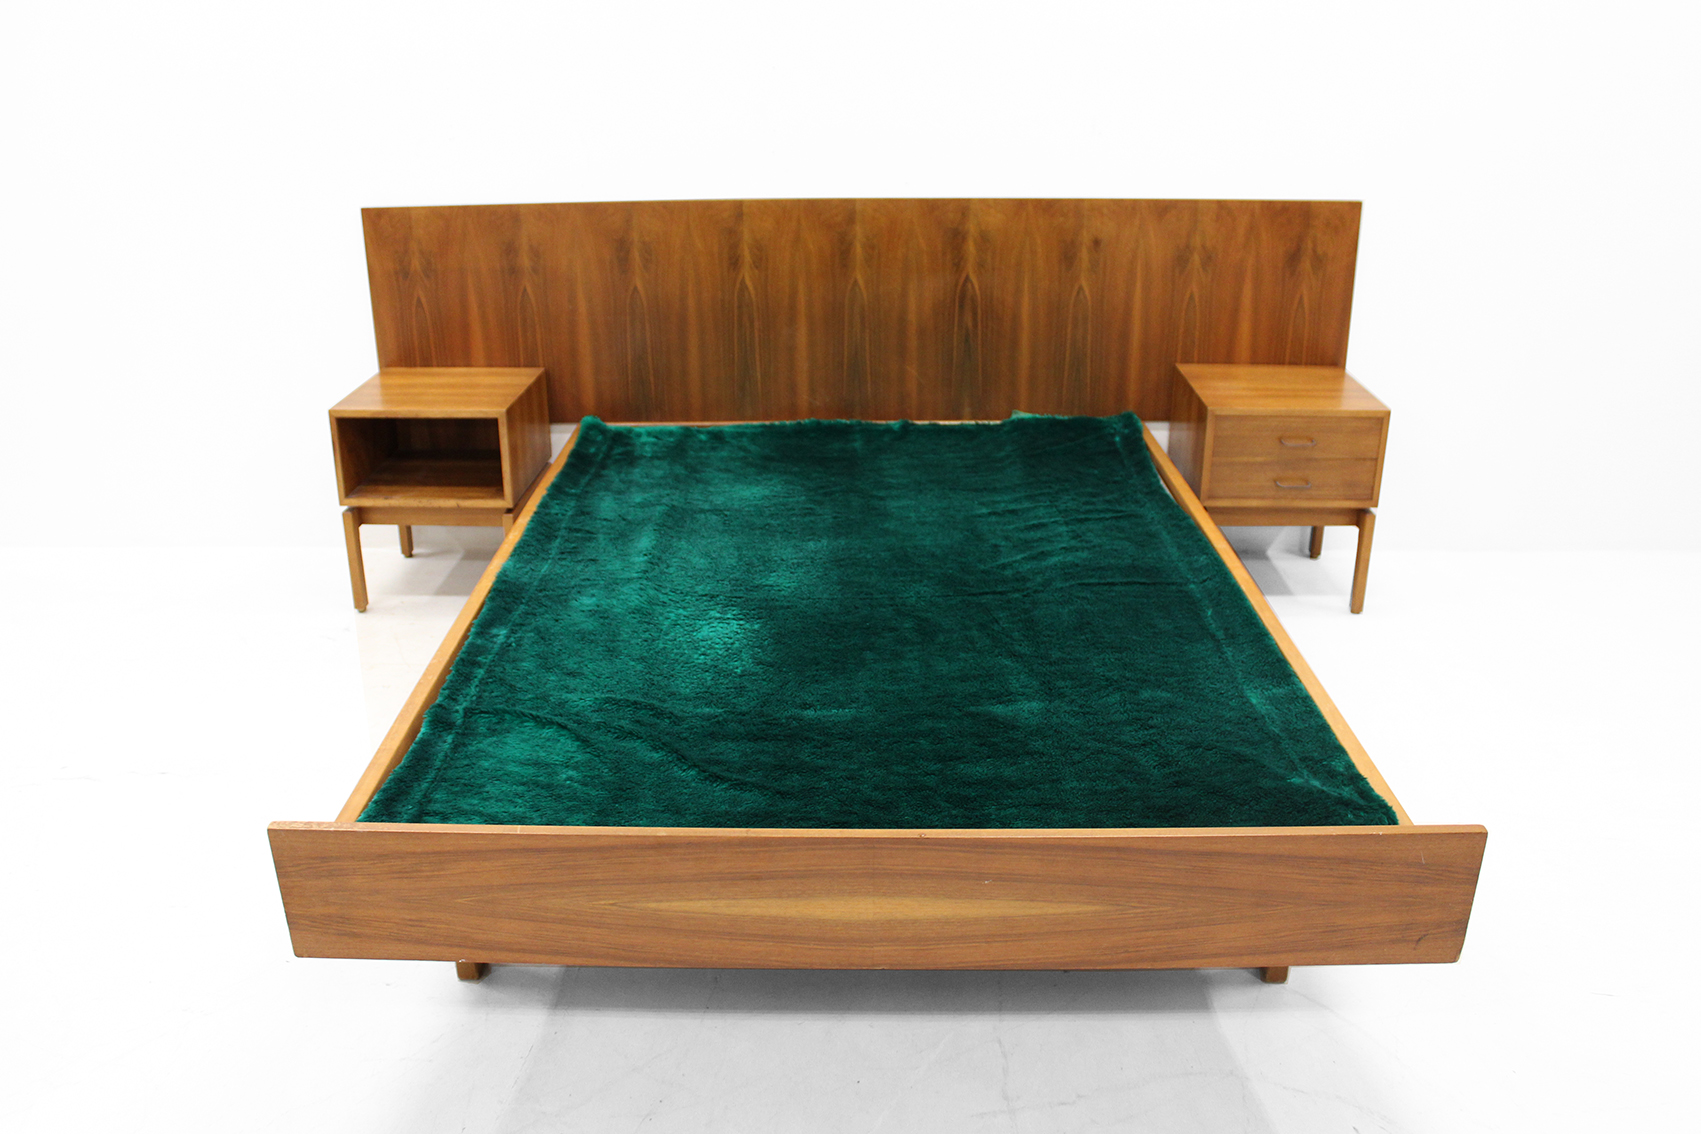 Bed in nutwood by Van den Berghe Pauvers (without slatted base)